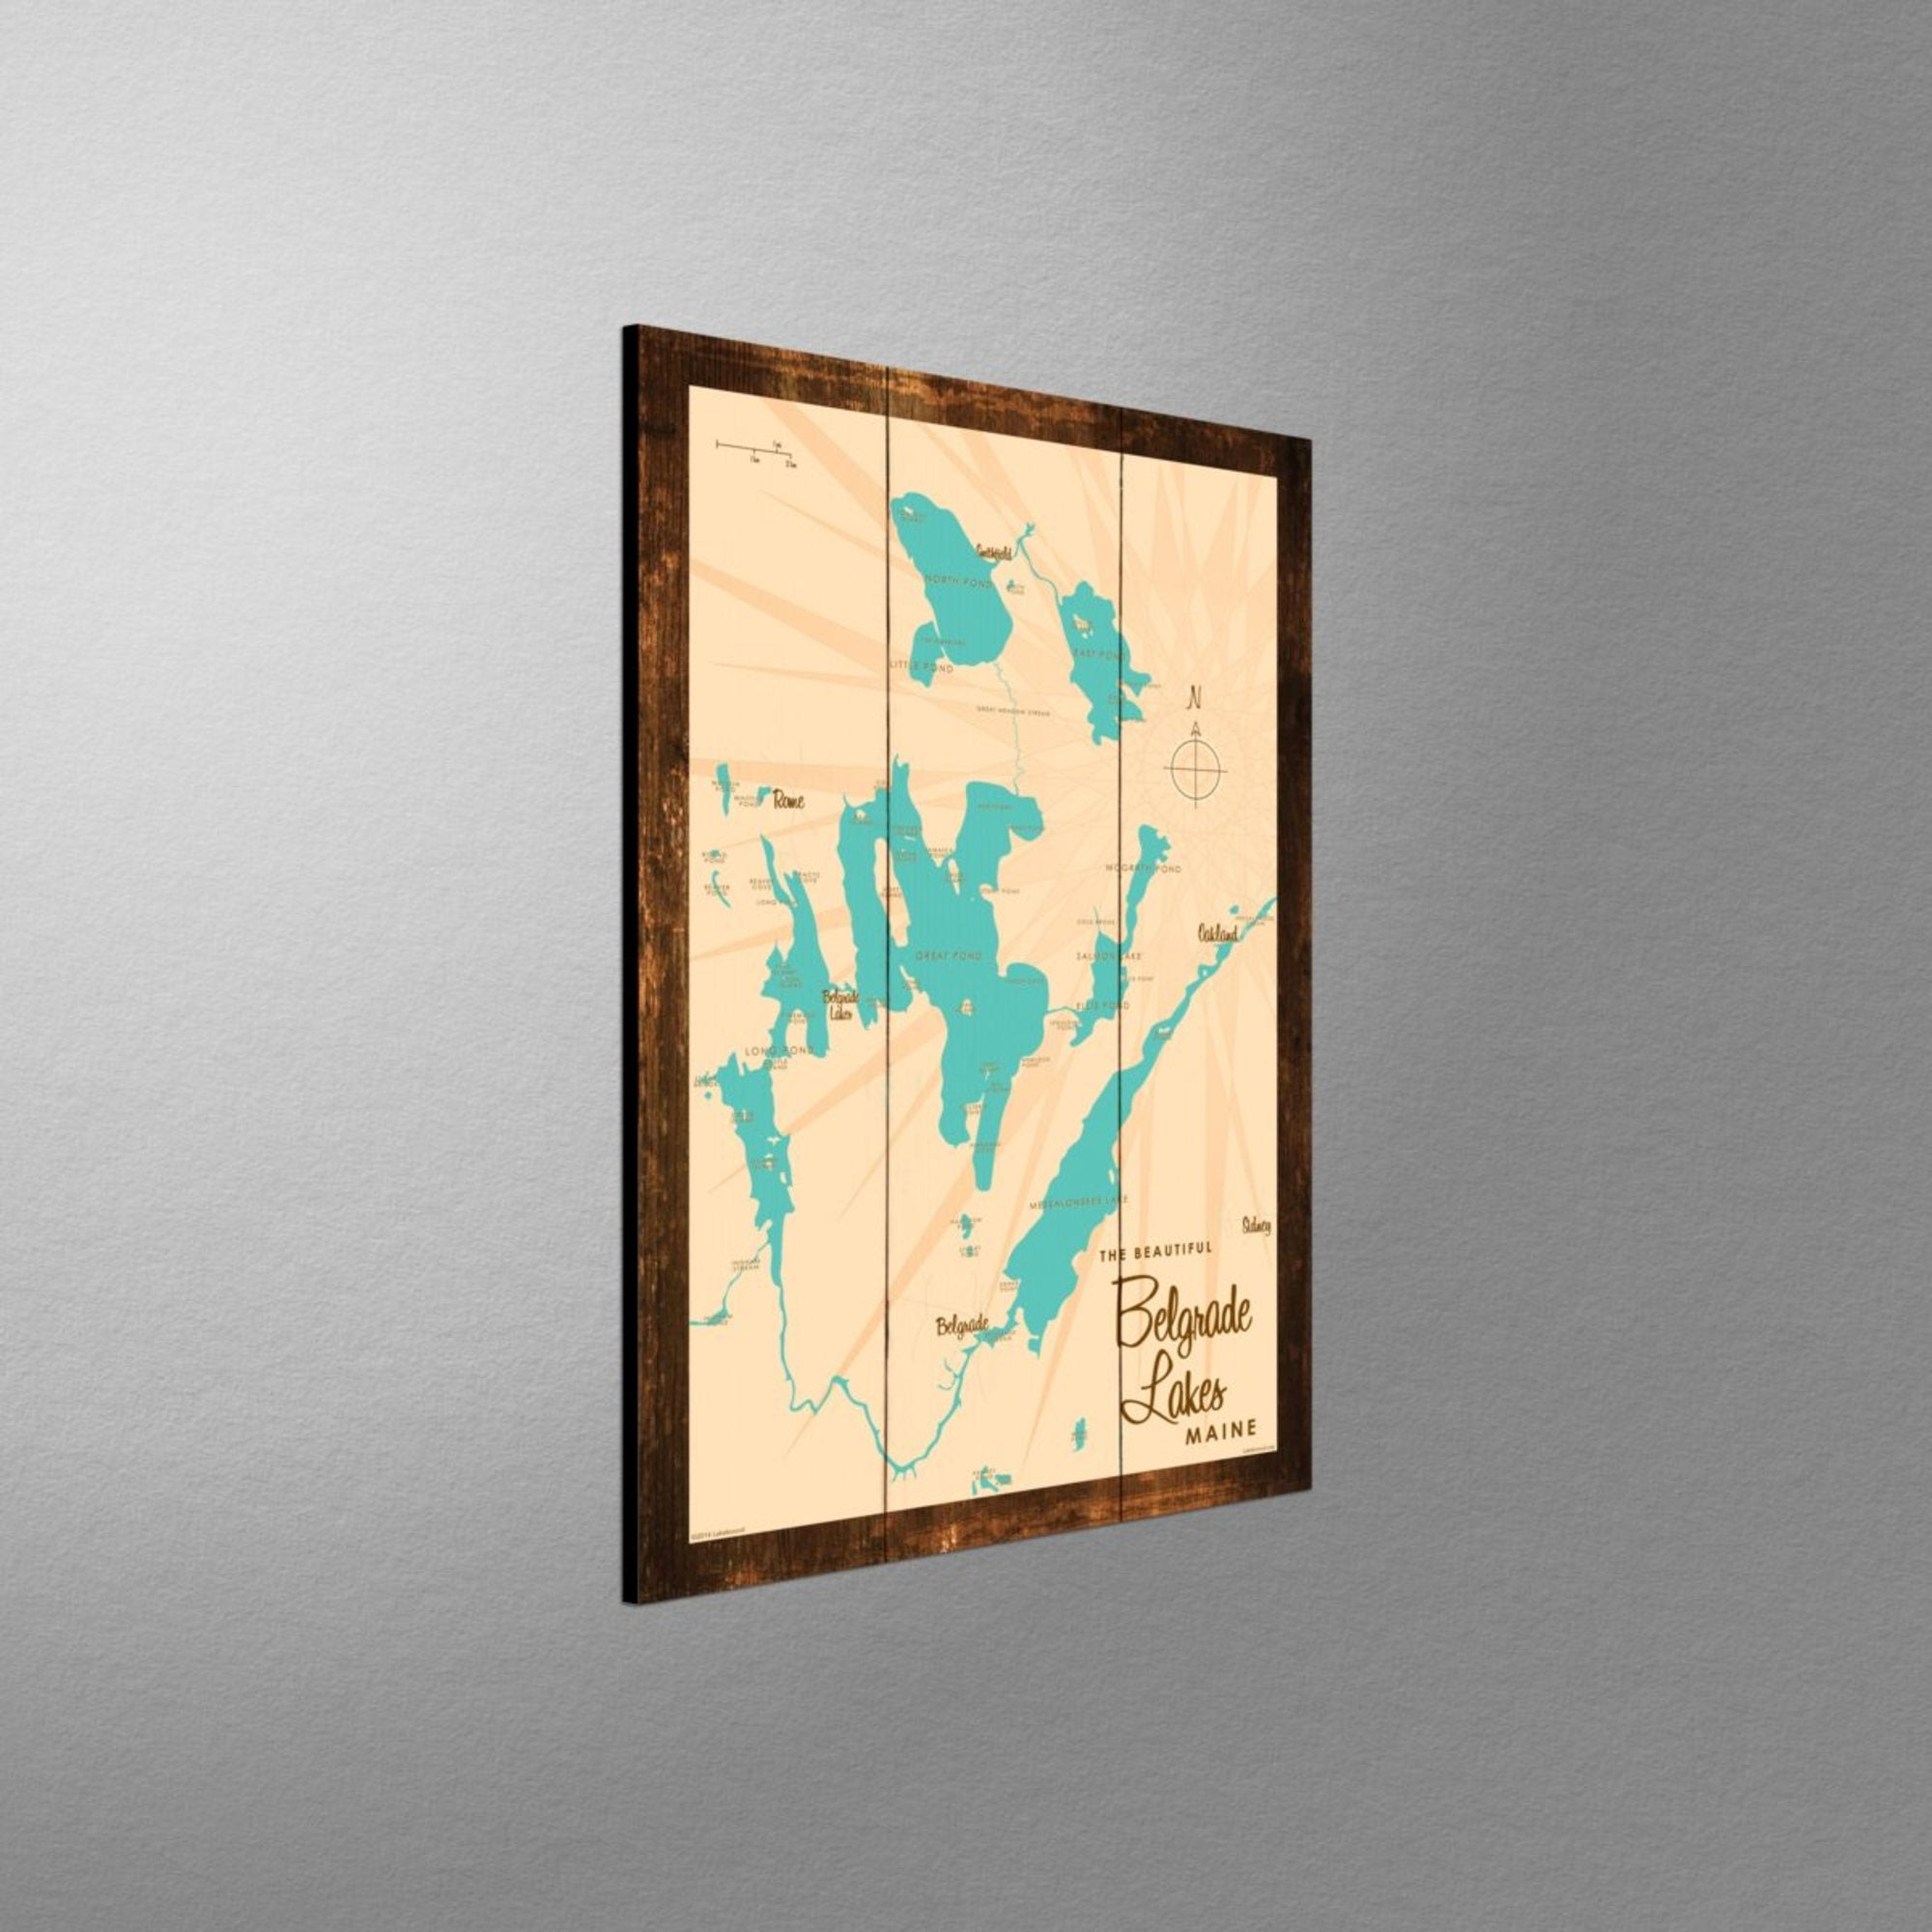 Belgrade Lakes Maine, Rustic Wood Sign Map Art